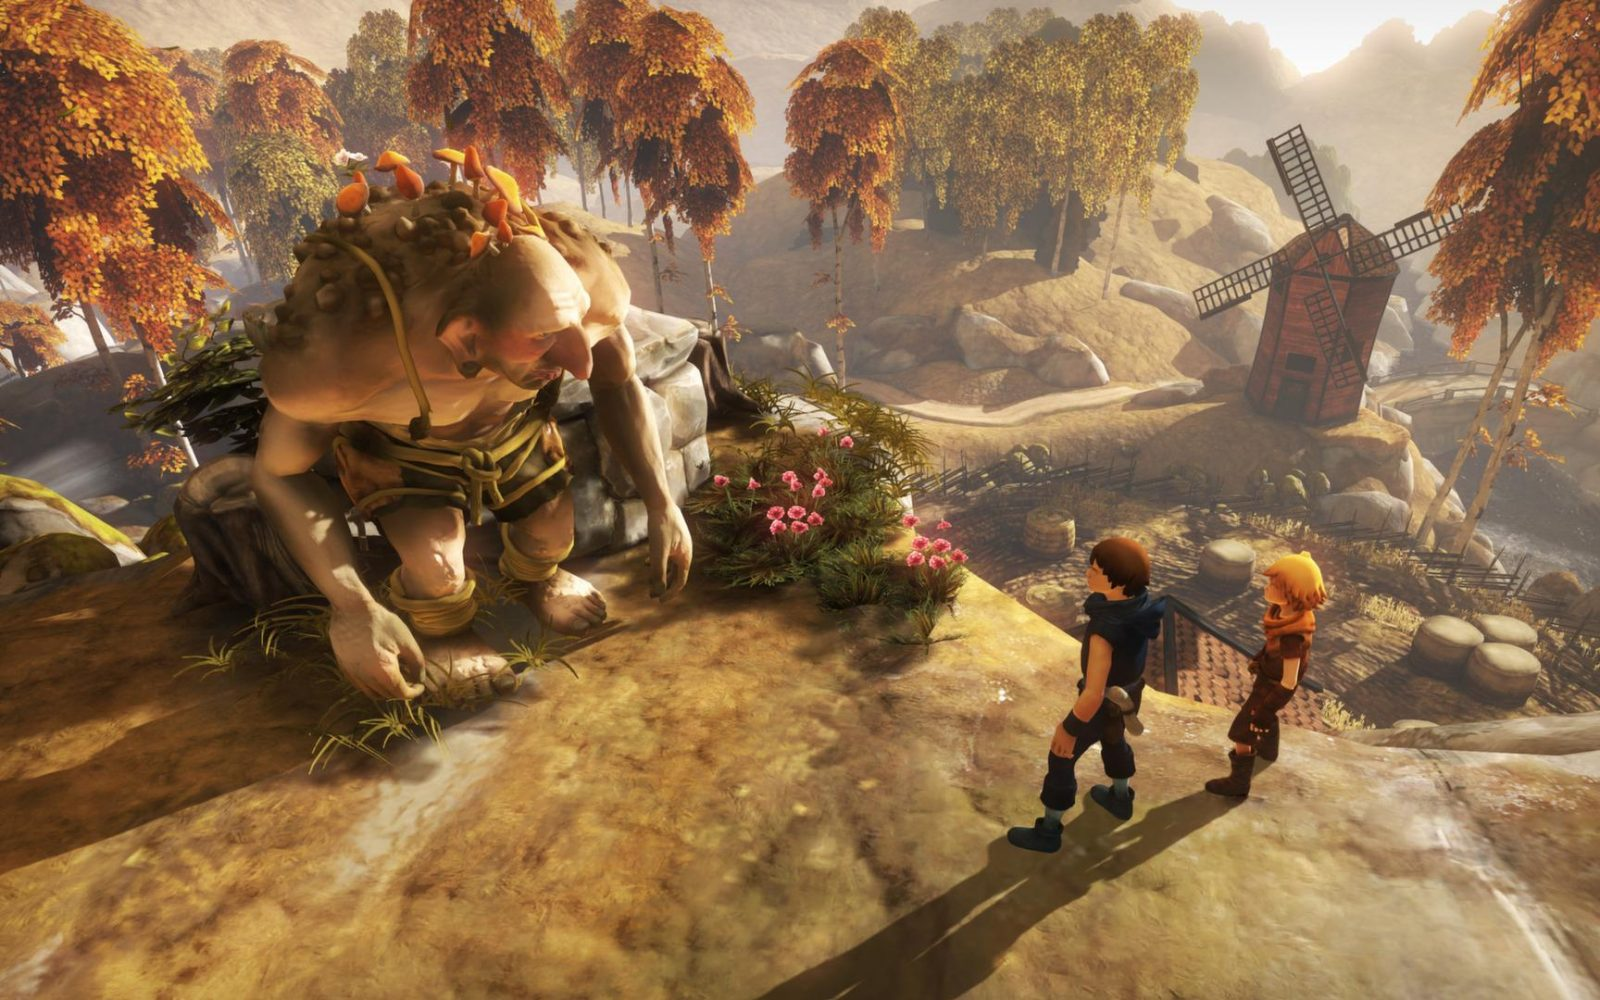 Brothers: A Tale of Two Sons - Best Video Games